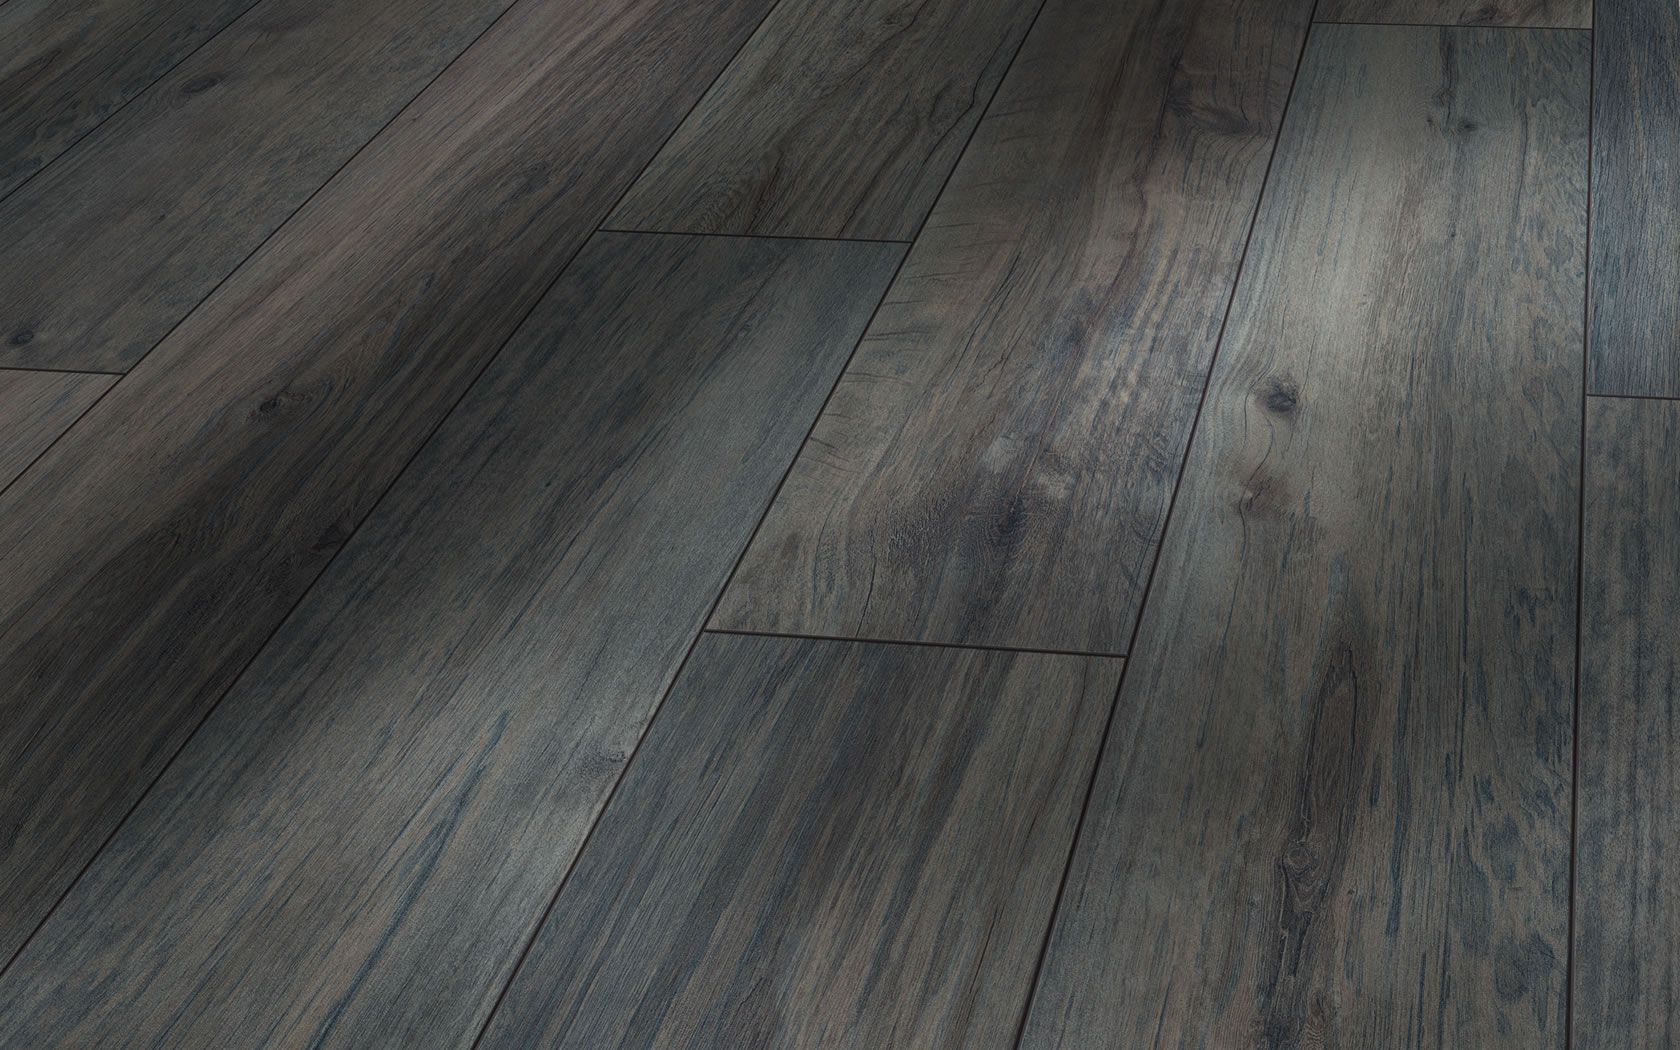 Laura ashley pine light grey laminate flooring best price Gray laminate flooring